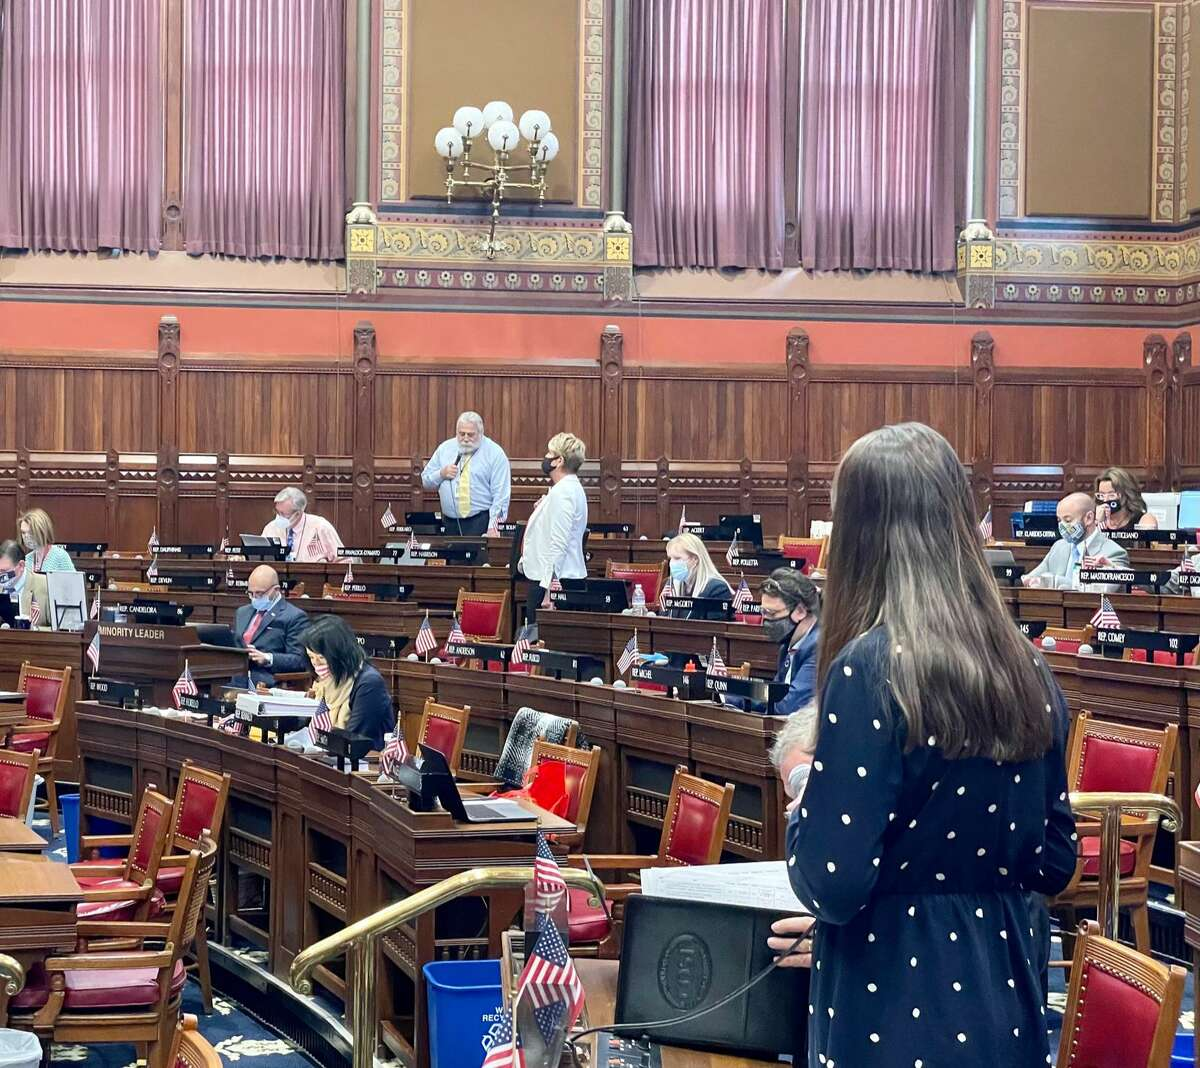 Rep. Jillian Gilchrest, D-West Hartford, defending the pregnancy crisis center bill in an exchange with Rep. Charles Ferraro, R-West Haven, on Wednesday.